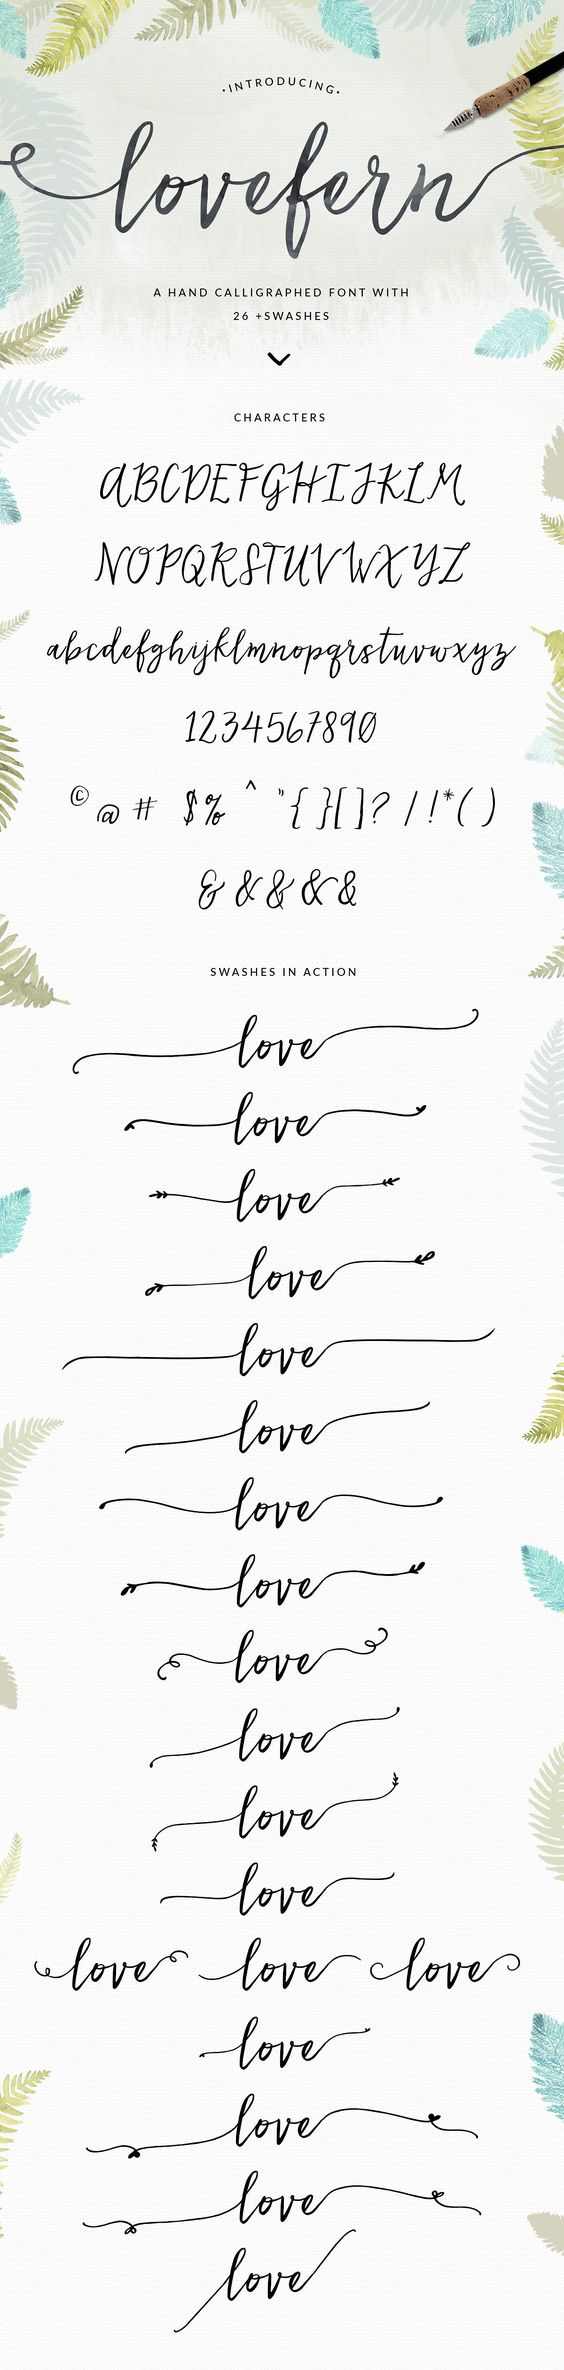 Lovefern Font + SWASHES by abaldelomar on @creativemarket